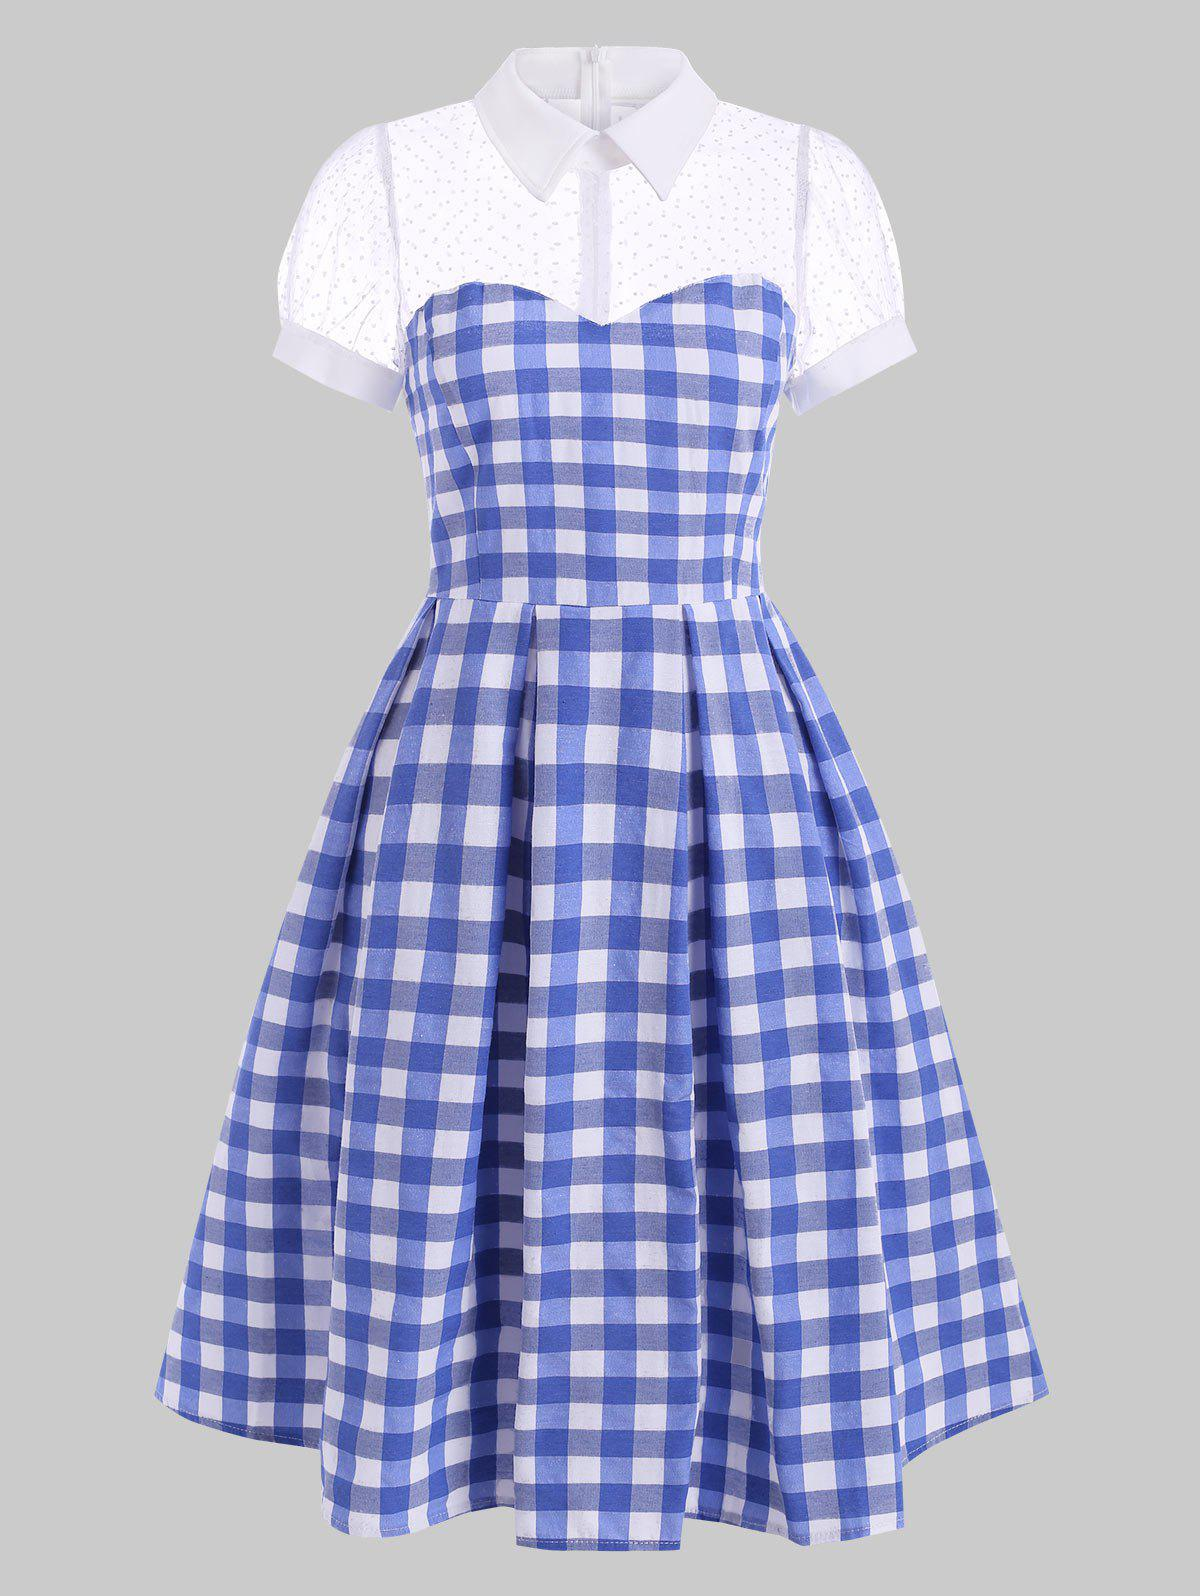 New Vintage Mesh Panel Checked Pin Up Dress